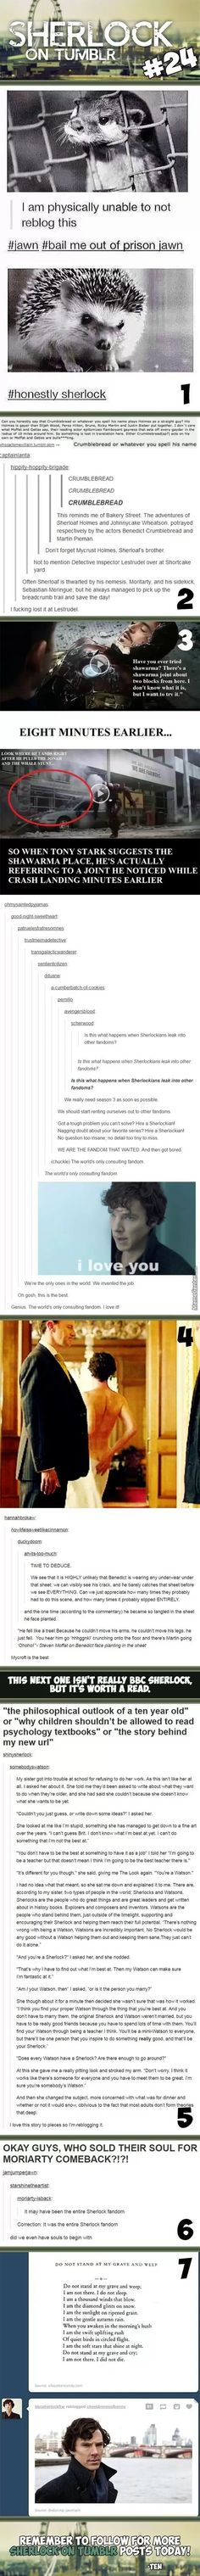 Sherlock On Tumblr #24